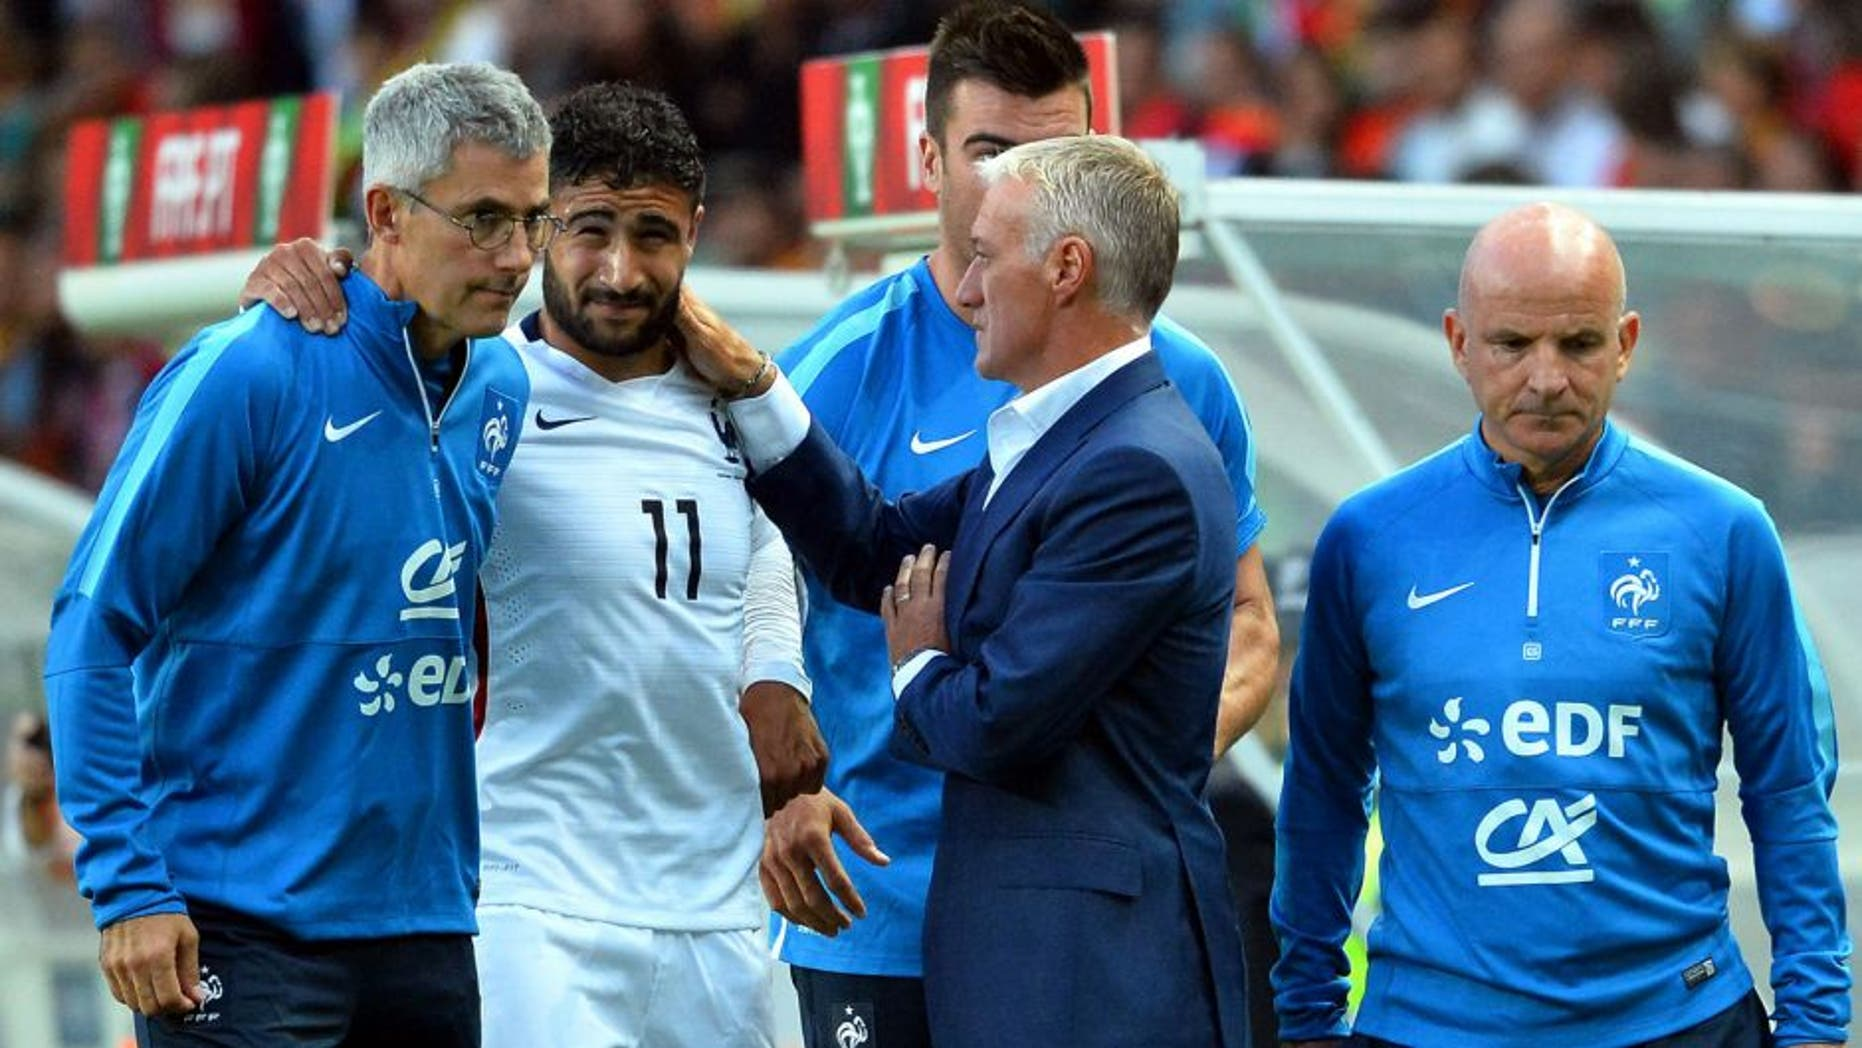 France's forward Nabl Fekir (C) leaves the pitch after injury next to French doctor Franck Le Gall (L), head coach Didier Deschamps and assistant coach Guy Stephan during the Euro 2016 friendly football match Portugal vs France at the Jose Alvalade stadium in Lisbon on September 4, 2015. France won 0-1. AFP PHOTO/ FRANCK FIFE (Photo credit should read FRANCK FIFE/AFP/Getty Images)